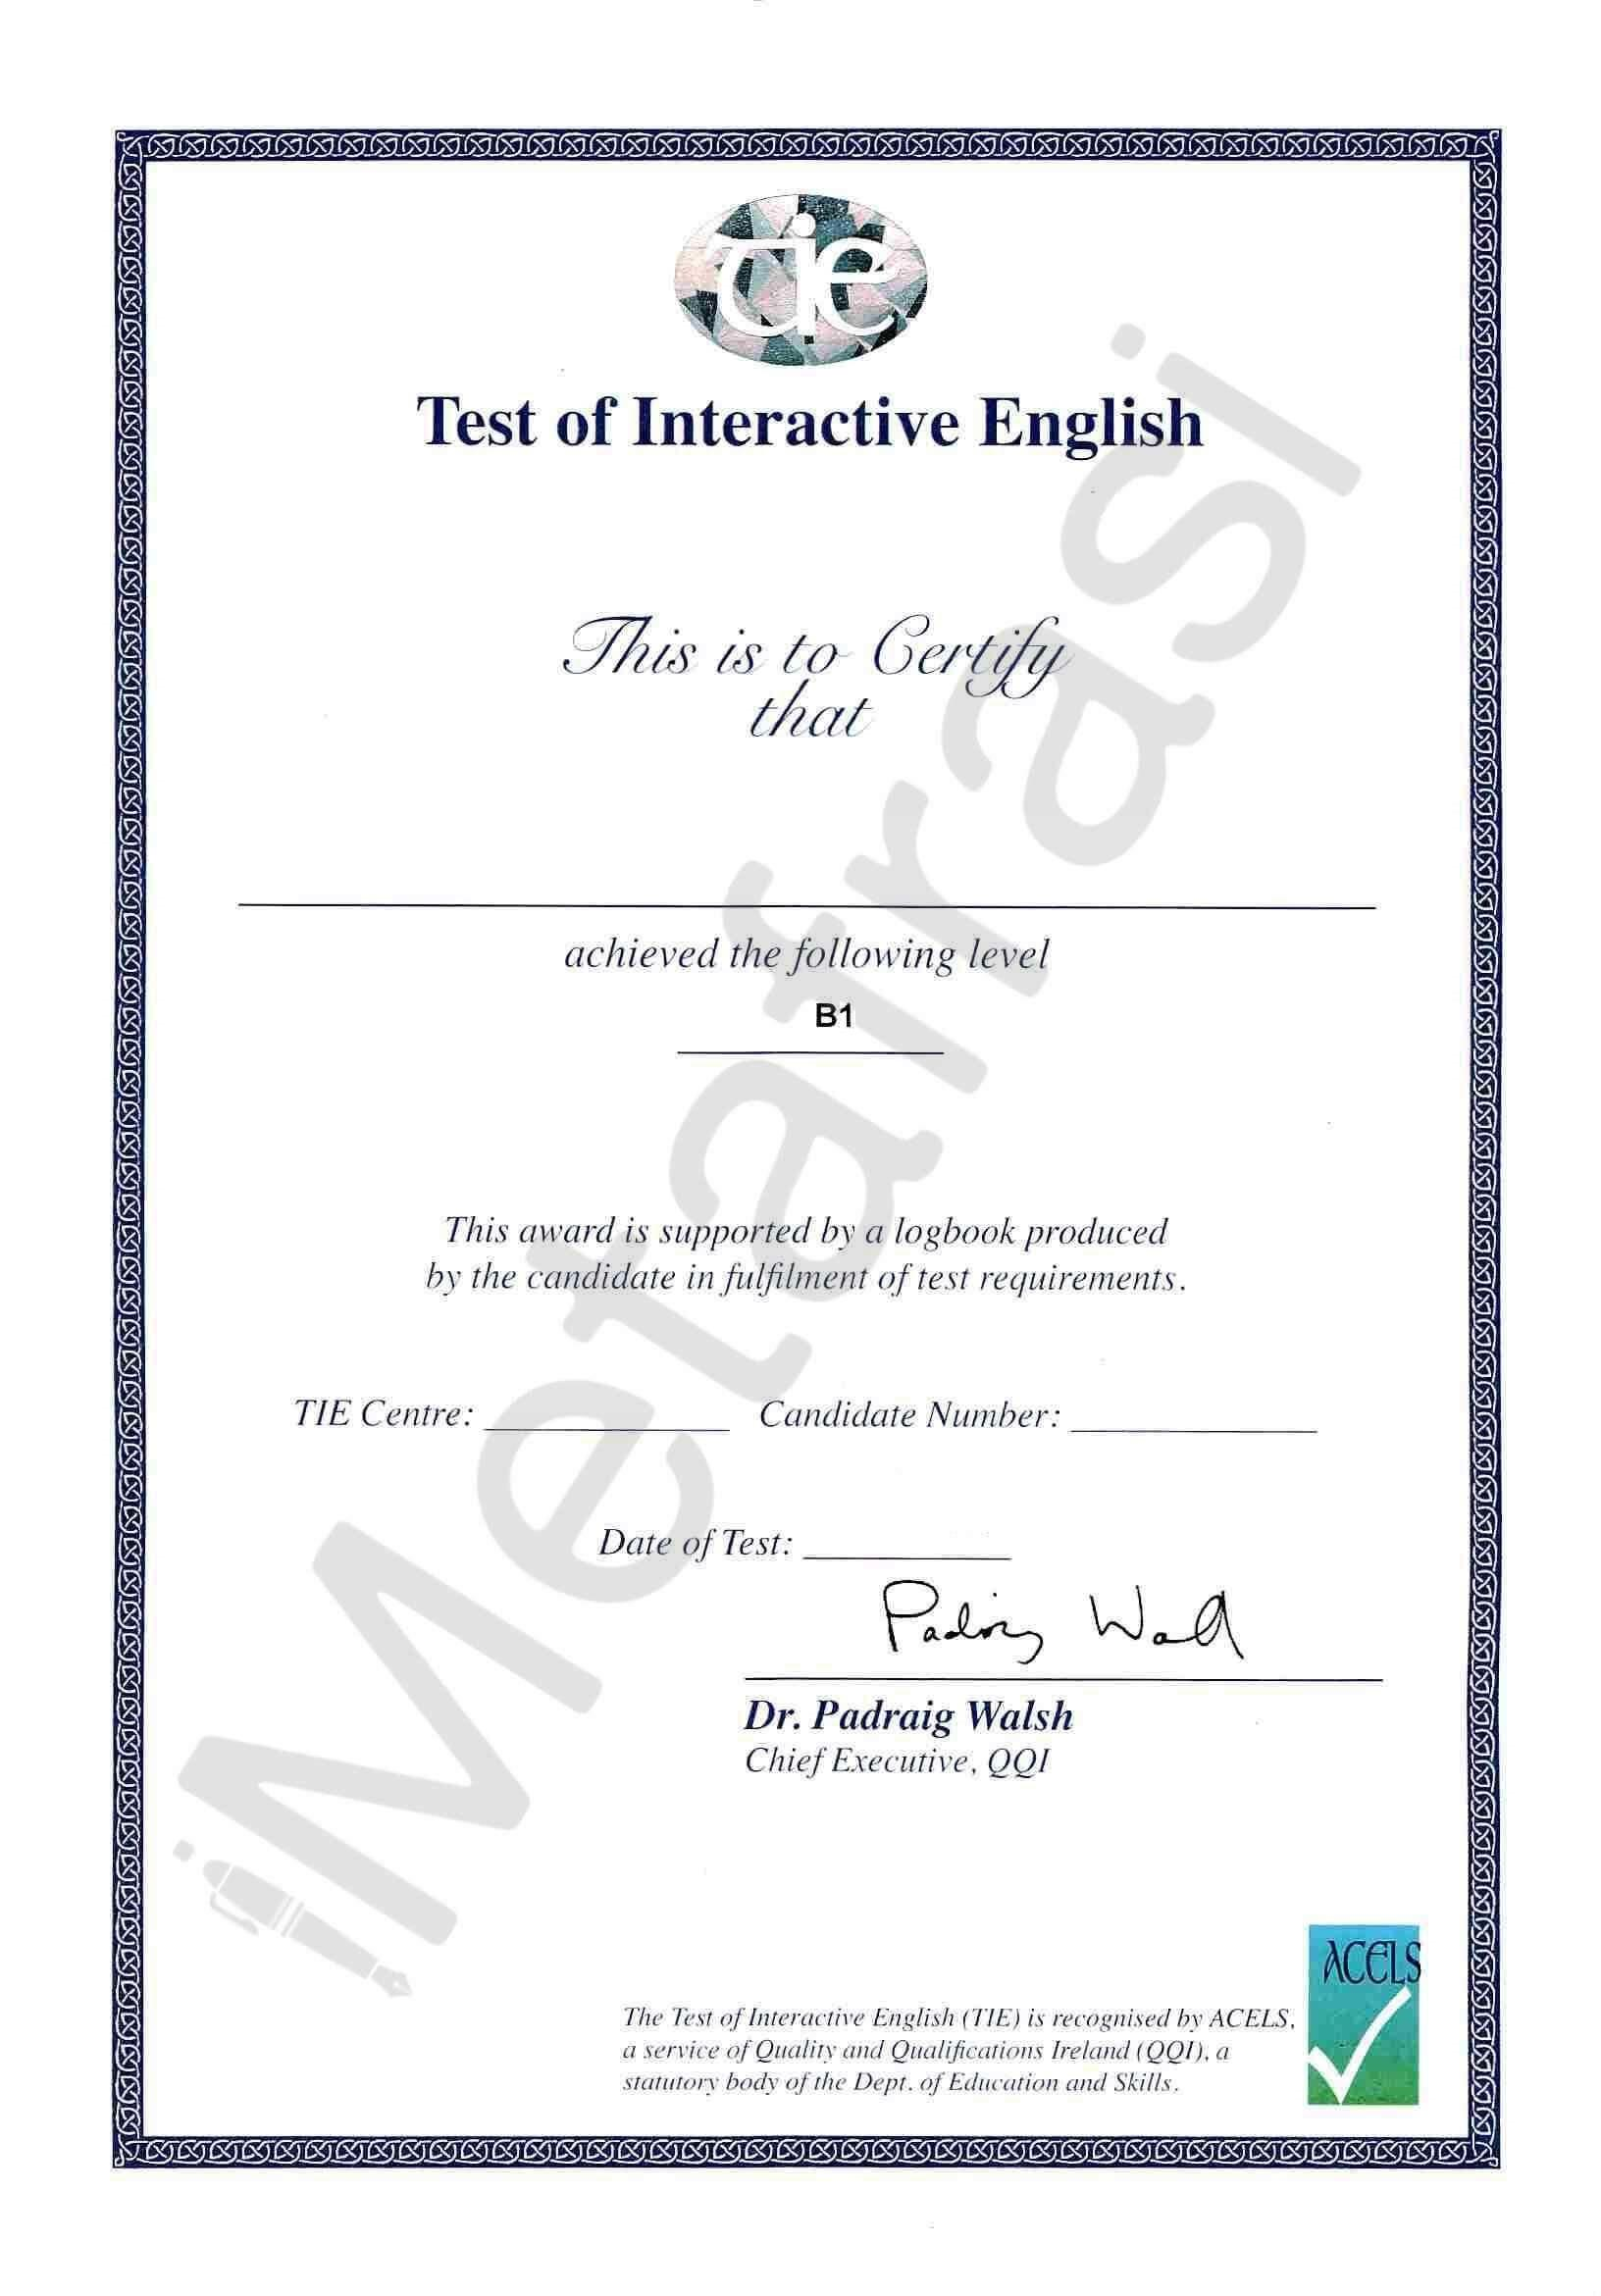 TIE Test of Interactive English B1 Level